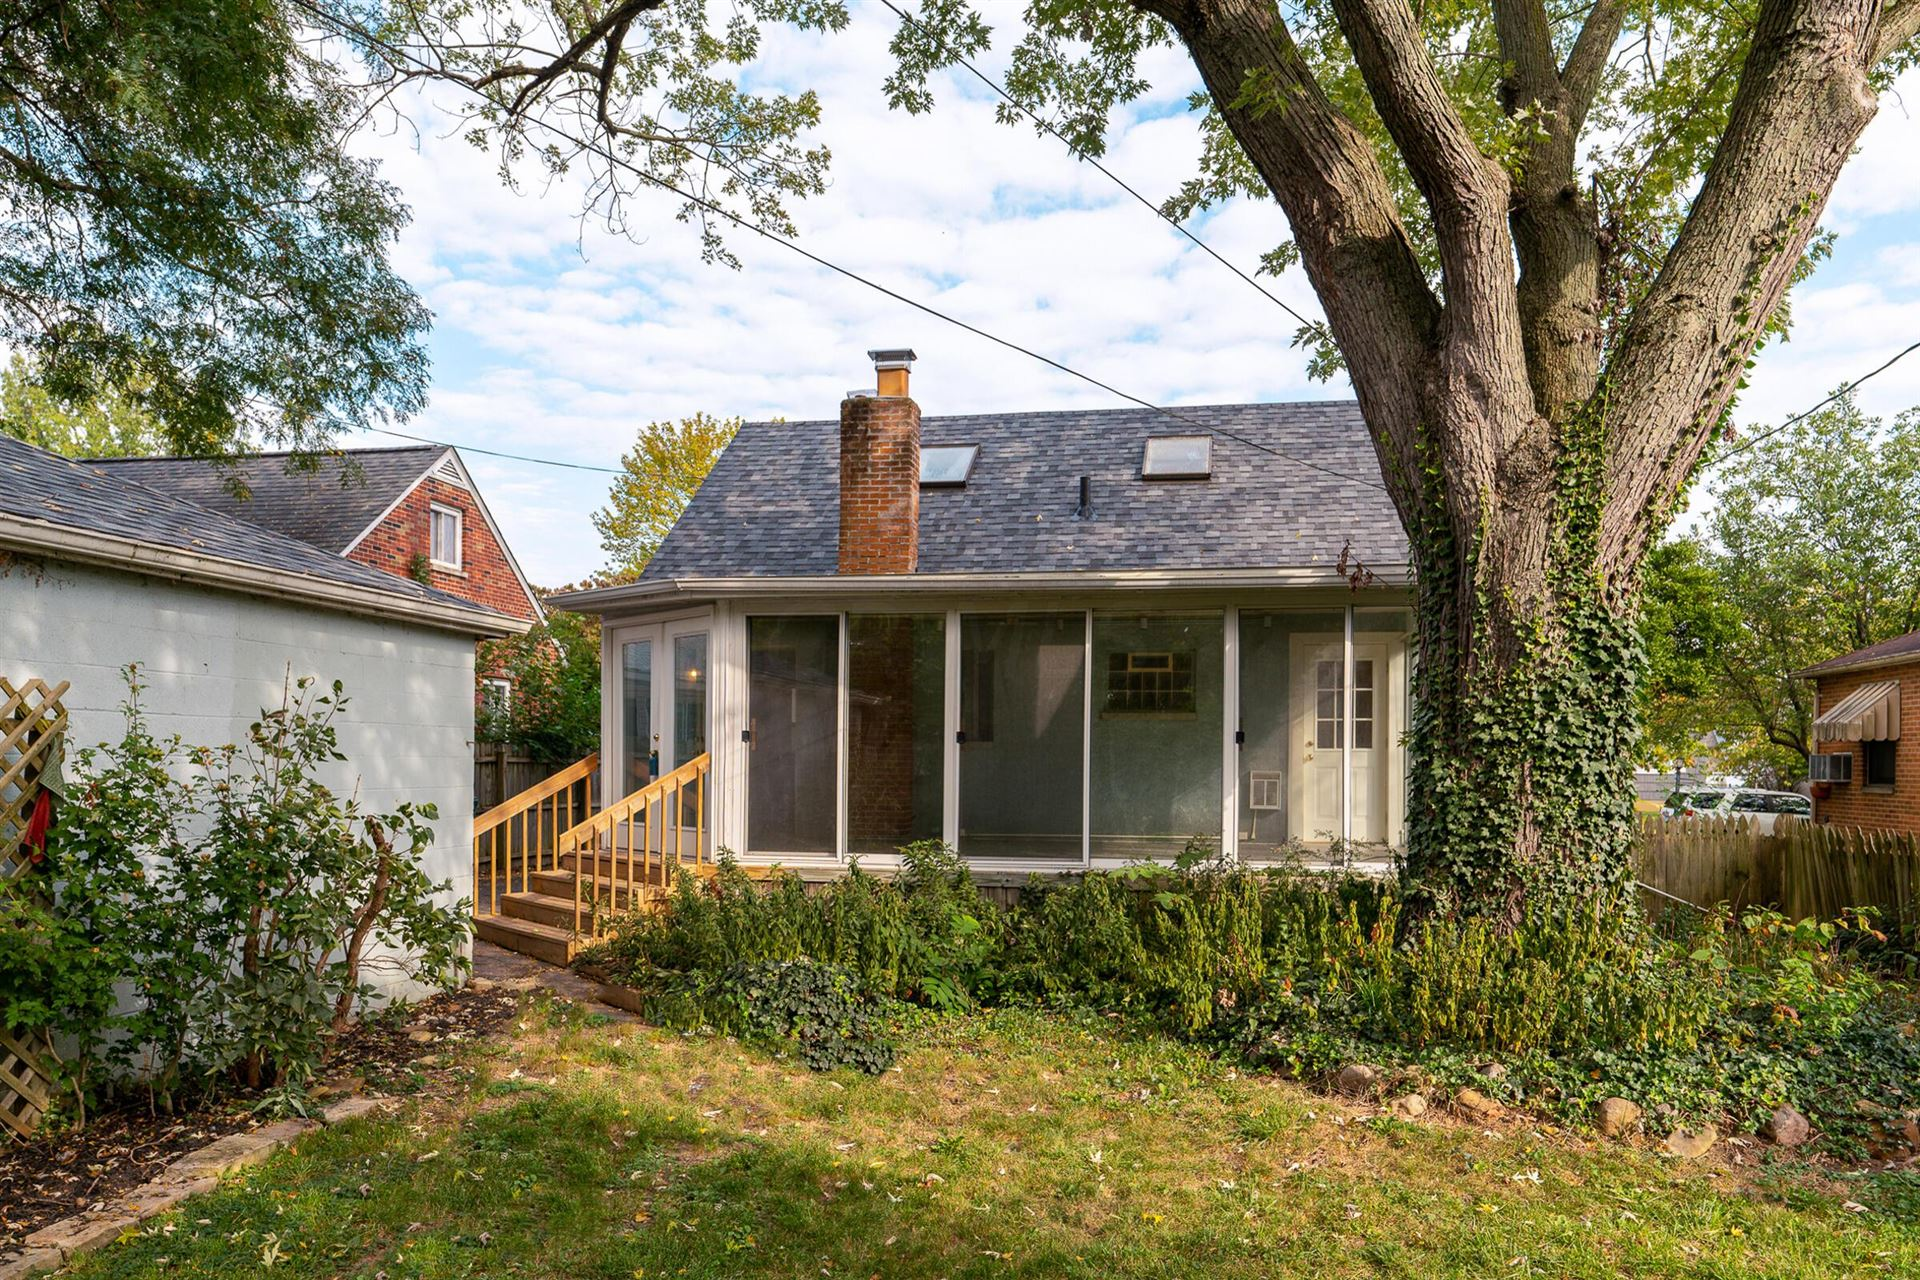 Photo of 2885 East Moreland Drive, Columbus, OH 43209 (MLS # 221040992)